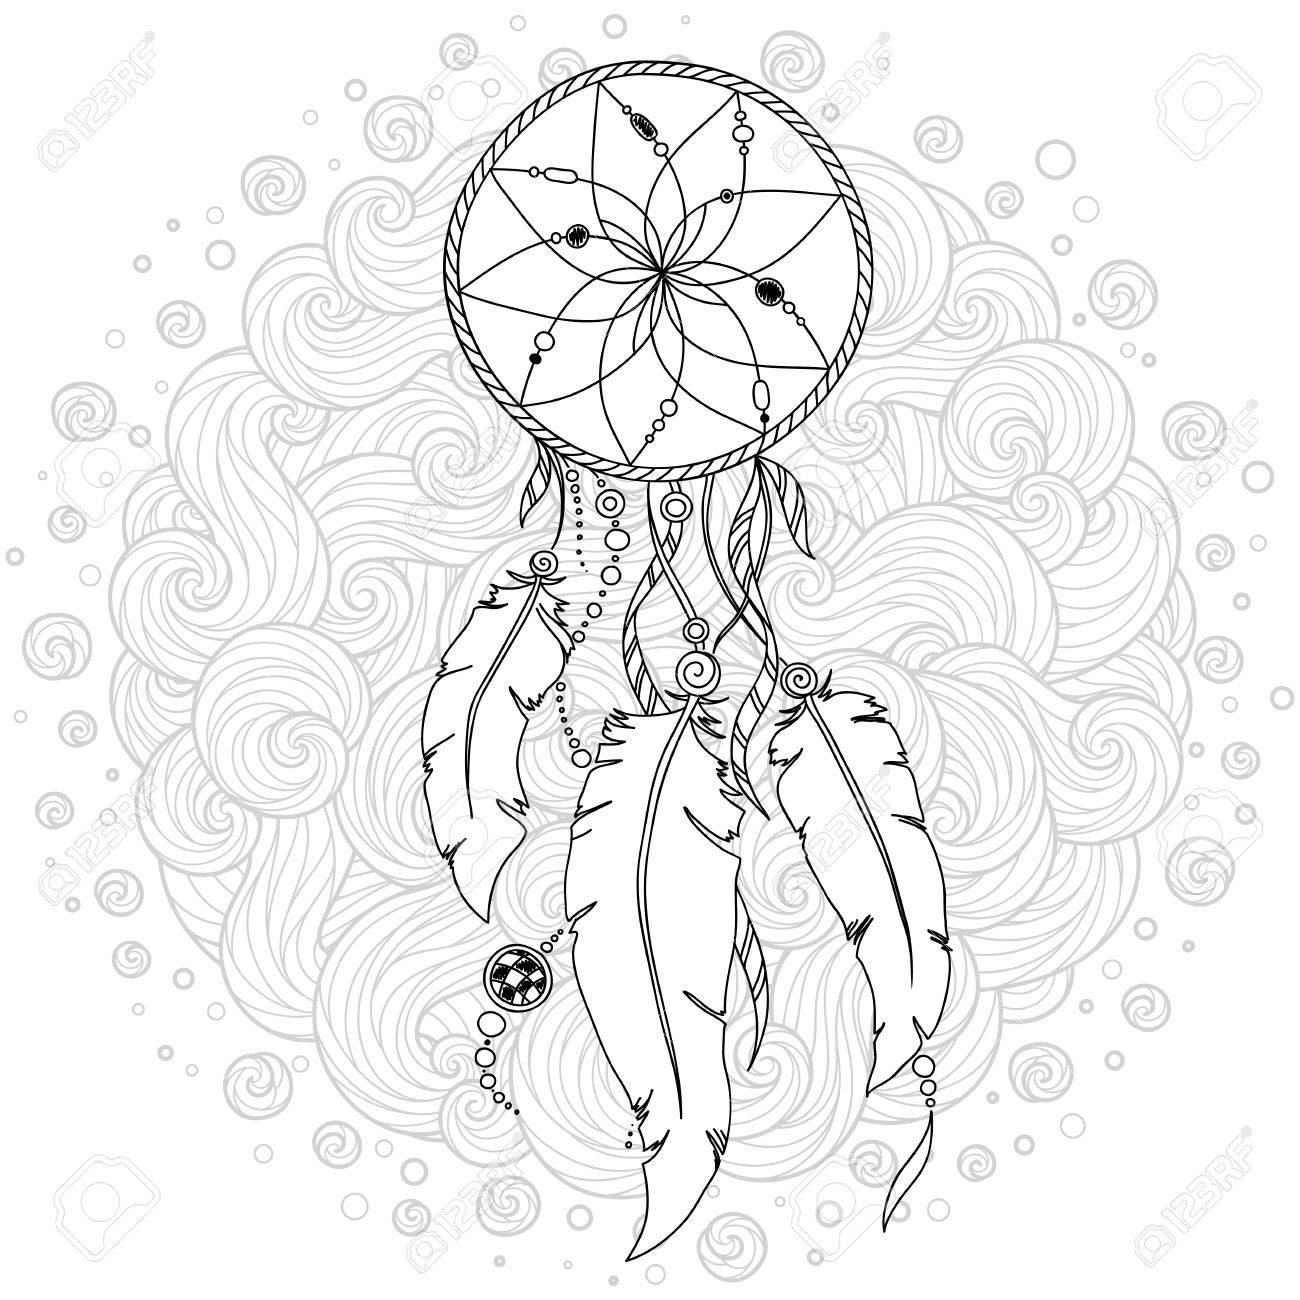 1300x1300 Monochrome Dream Catcher With Feathers. Hand Drawn Vector